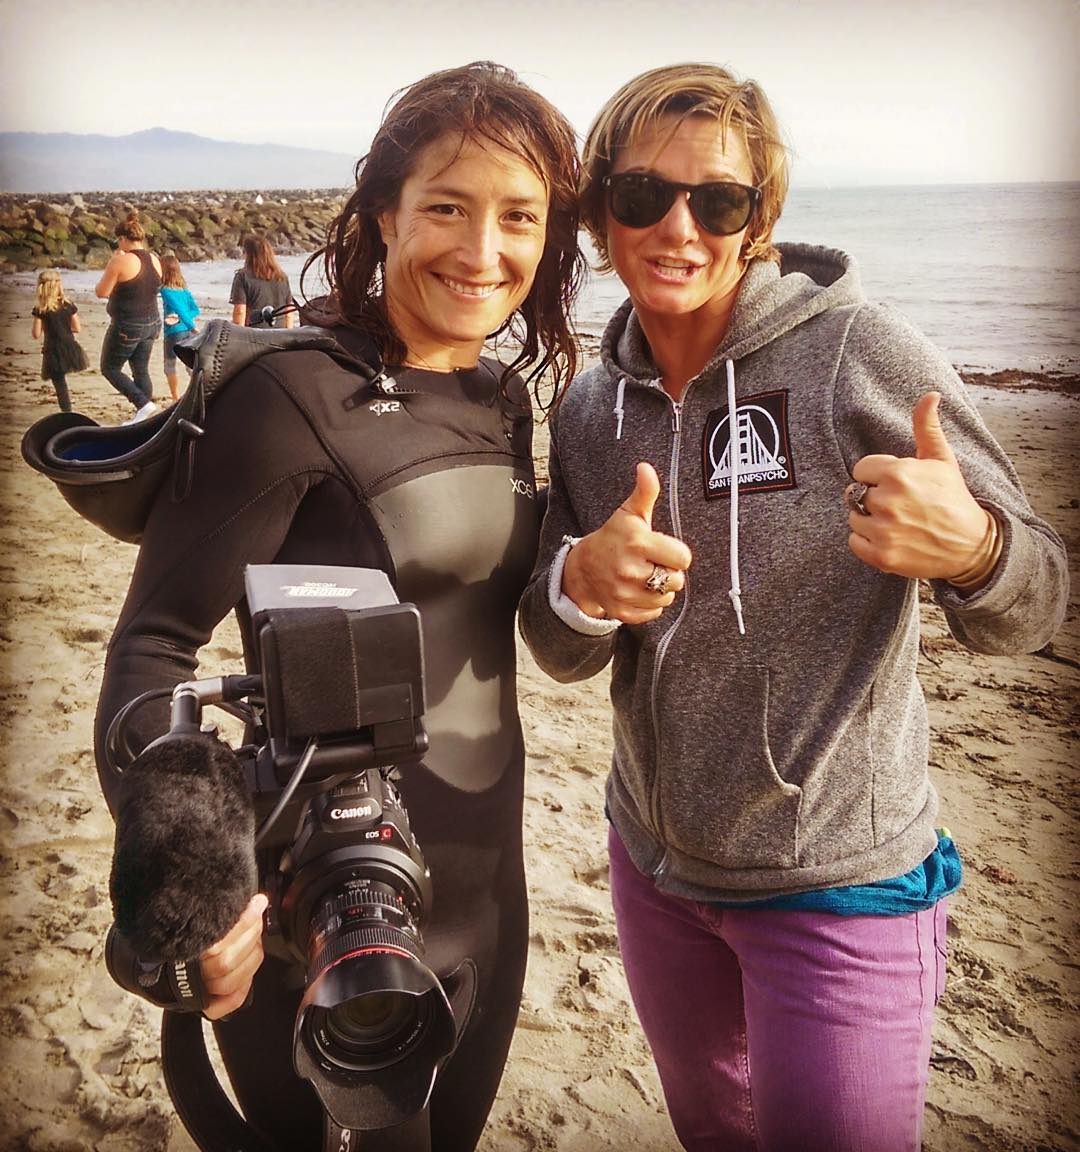 "Had a two thumbs up type day hanging out with one of our fav athlete ambassadors @biancavalenti at the opening ceremony of the #titansofmavericks (aka the ""Mavs"") surf contest, on the beach at Pilar Point / HMB."